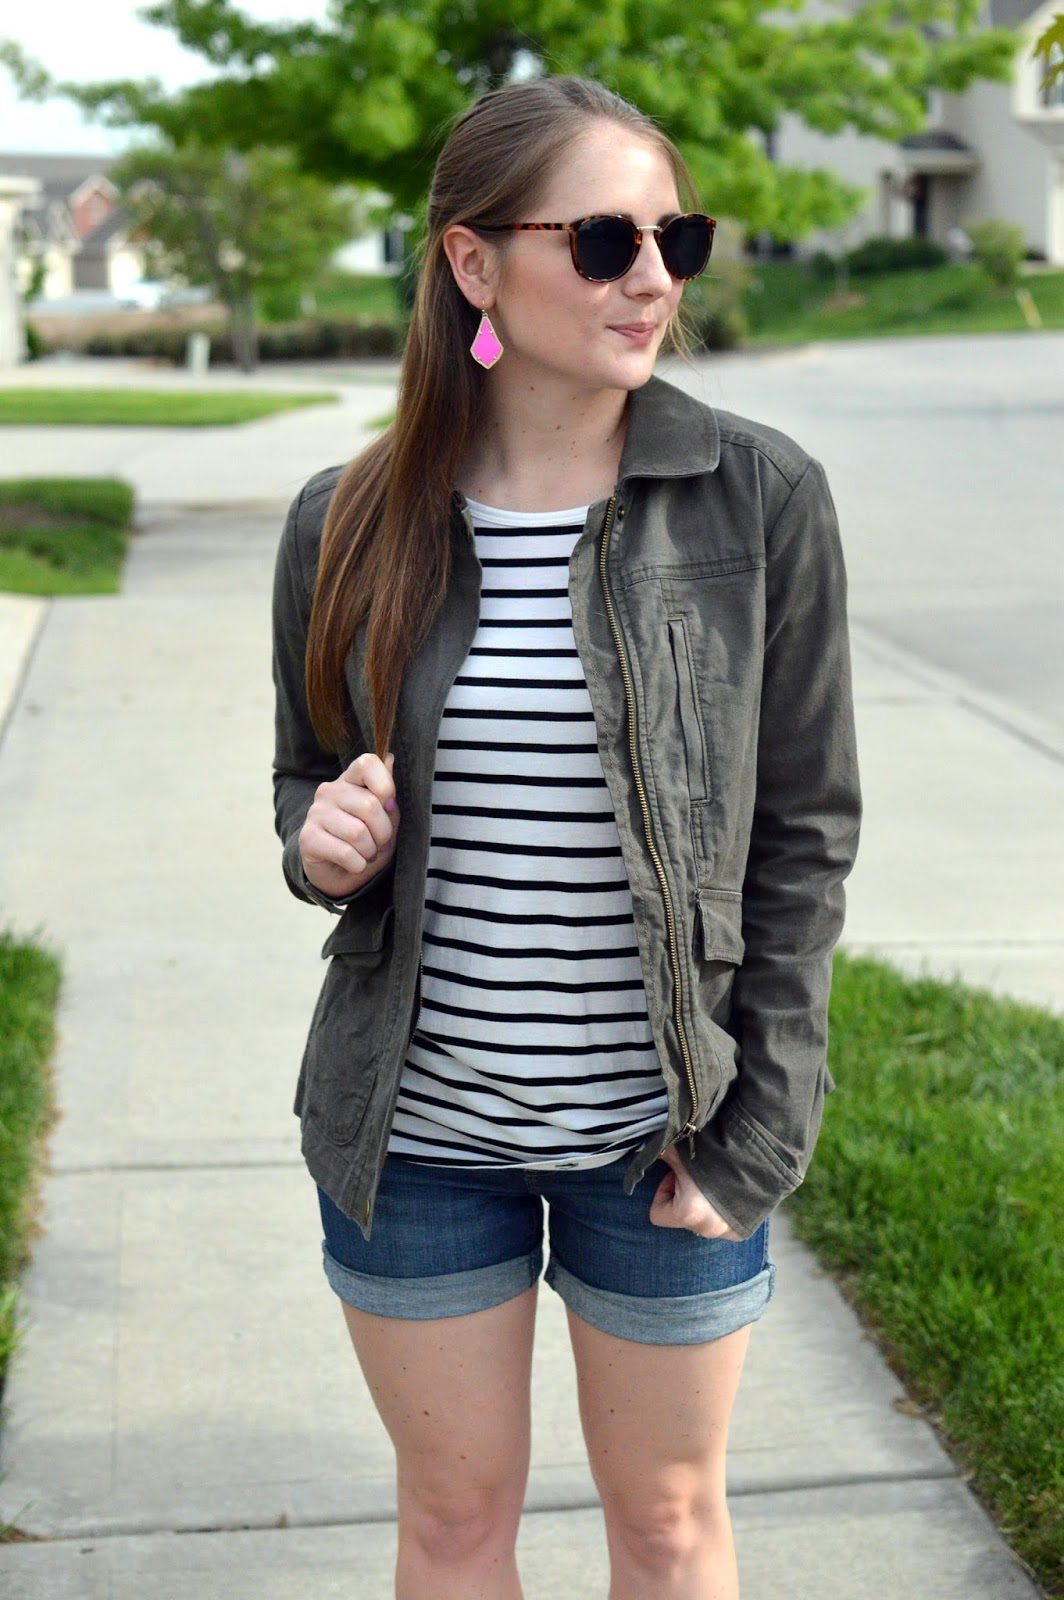 denim shorts and a military jacket | what to wear with jean shorts |how to wear your military jacket in the spring | spring looks | striped top | pink earrings | a memory of us